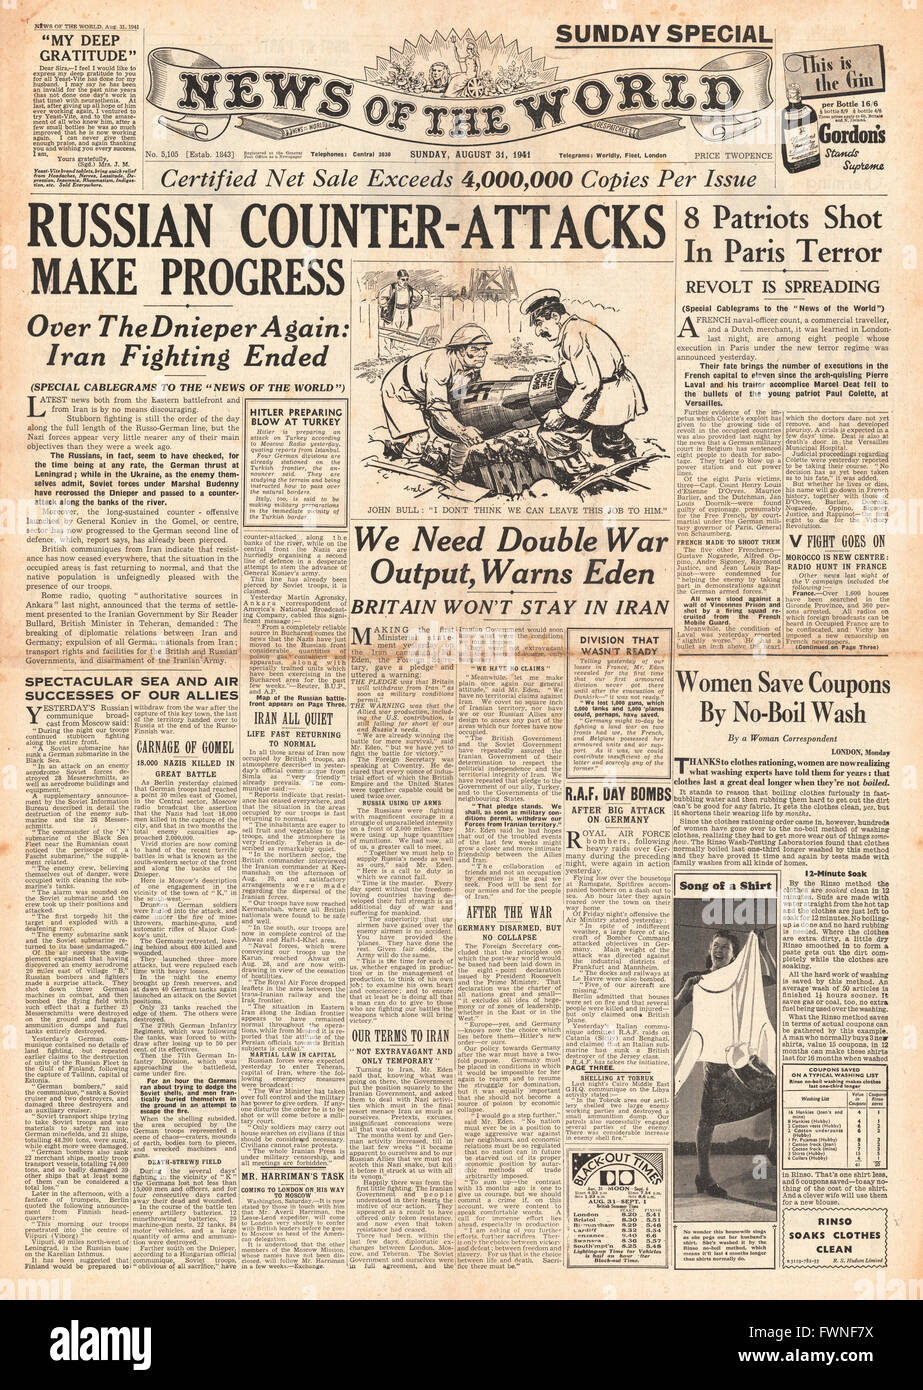 1941 front page News of the World Russian counter attacks make progress and executions in Paris Stock Photo